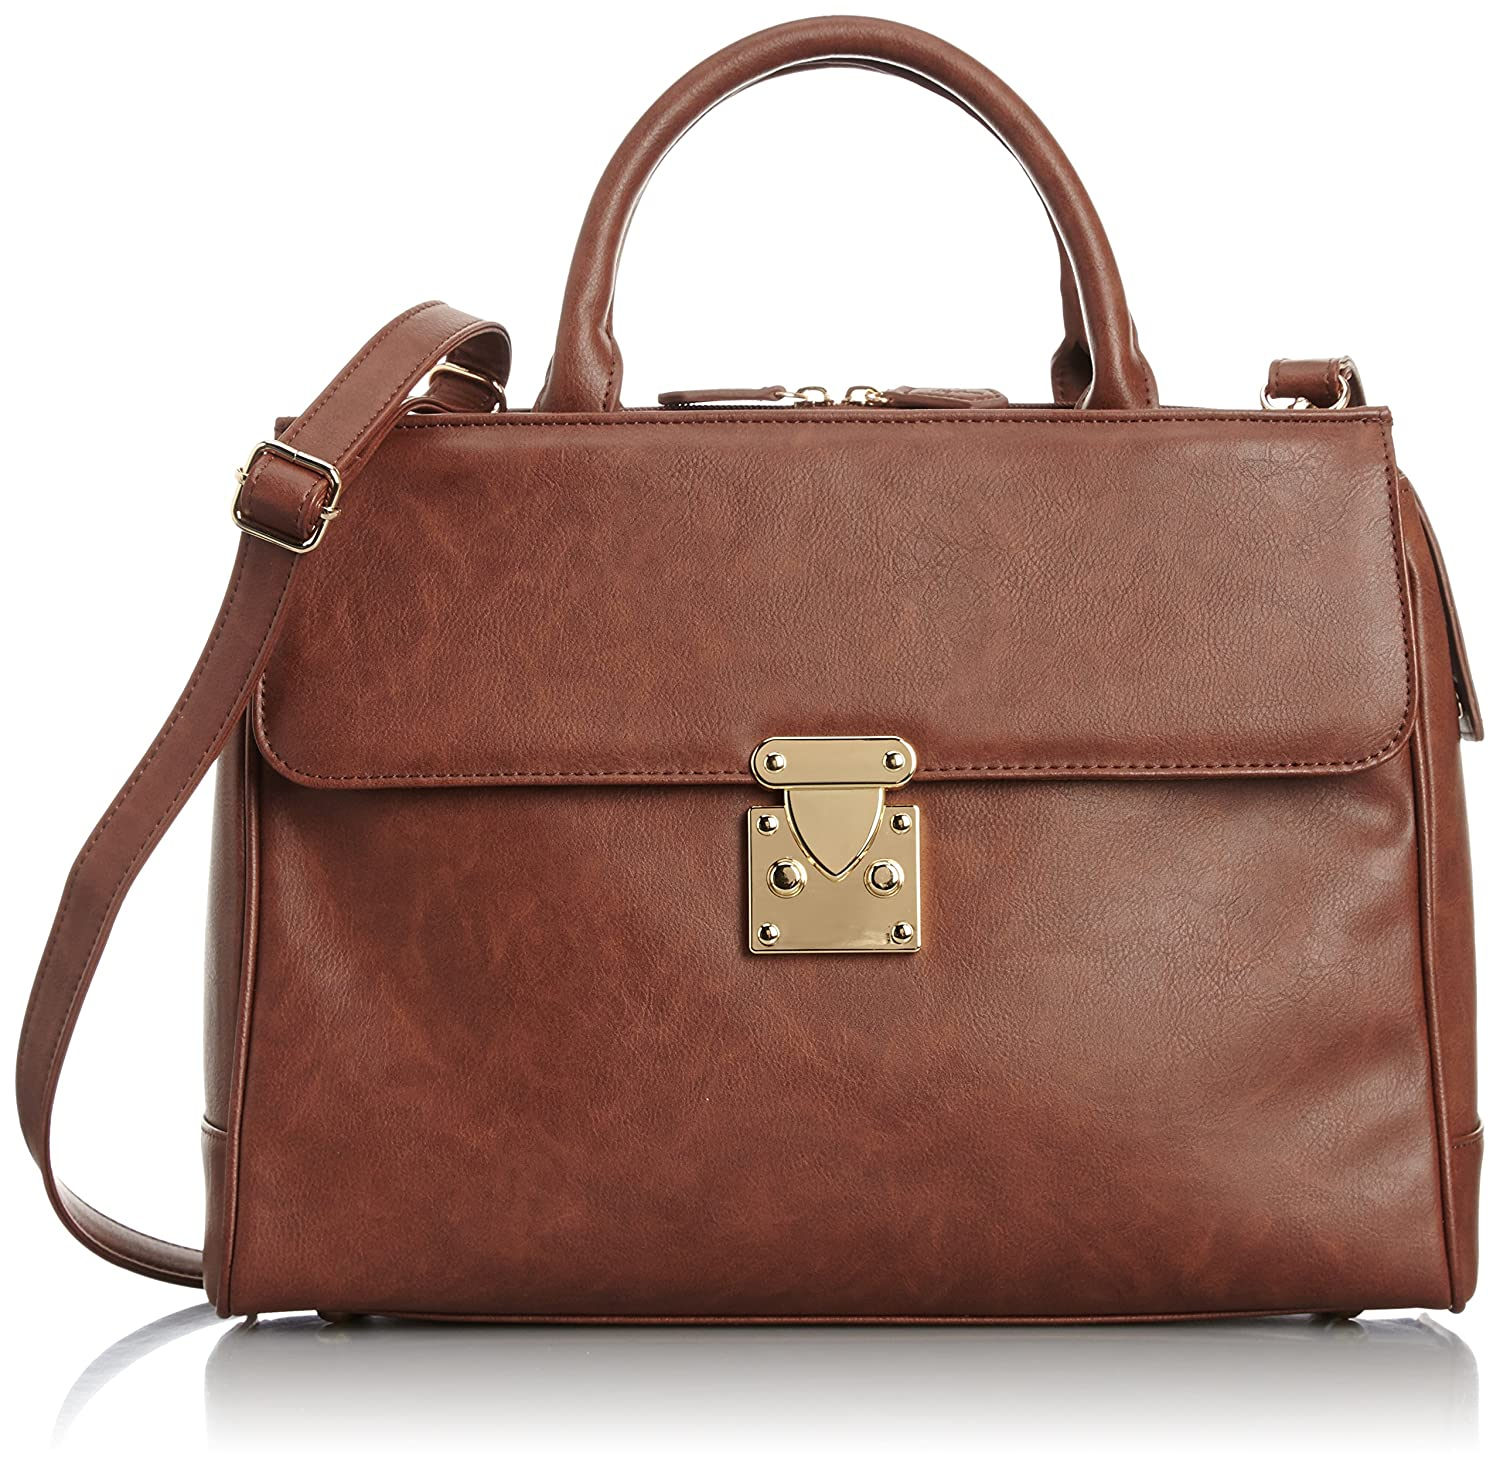 Amazon.co.jp: [リリーブラウン] Lily Brown アウトポケット2WAYBAG LWGB151306 58 (BRW): シューズ&バッグ:通販